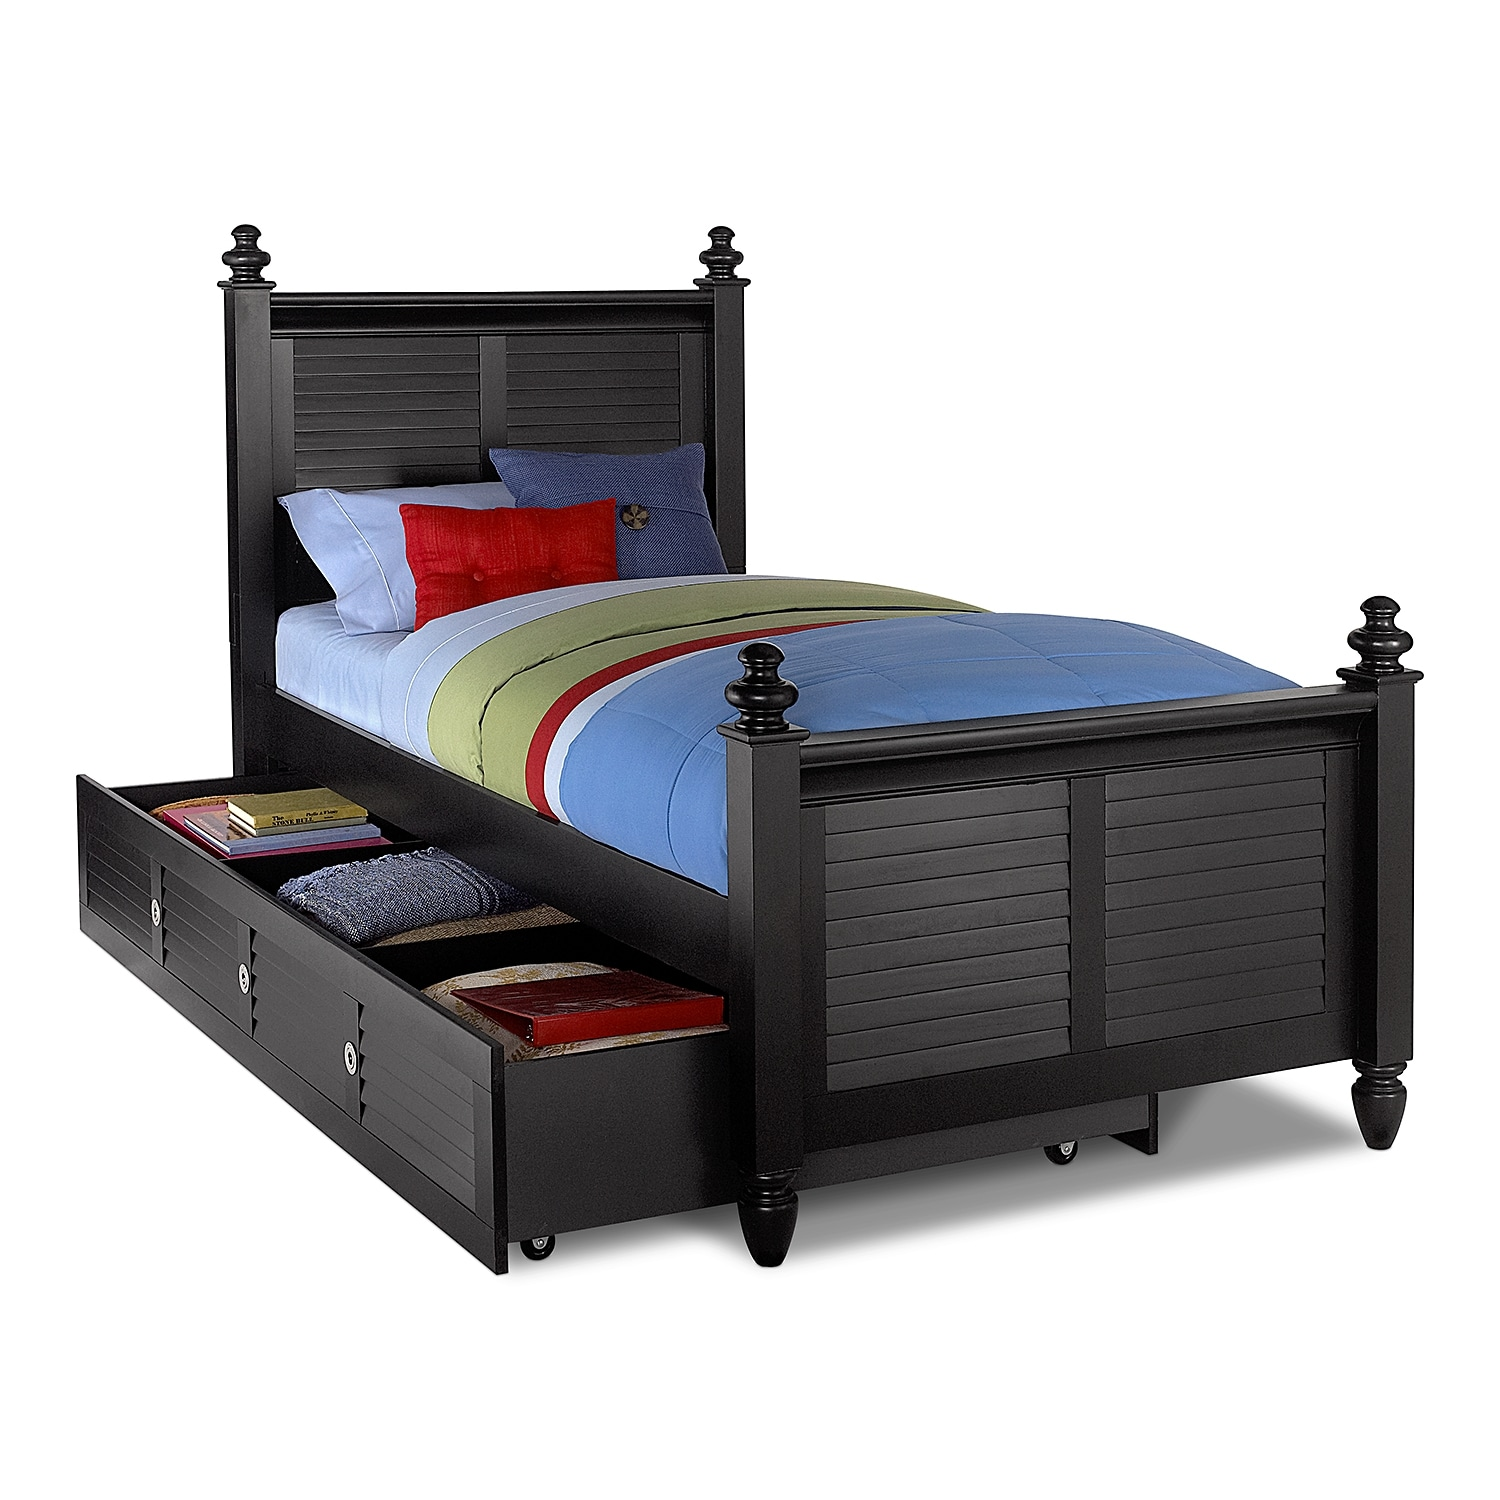 Seaside Twin Bed With Trundle Black American Signature Furniture